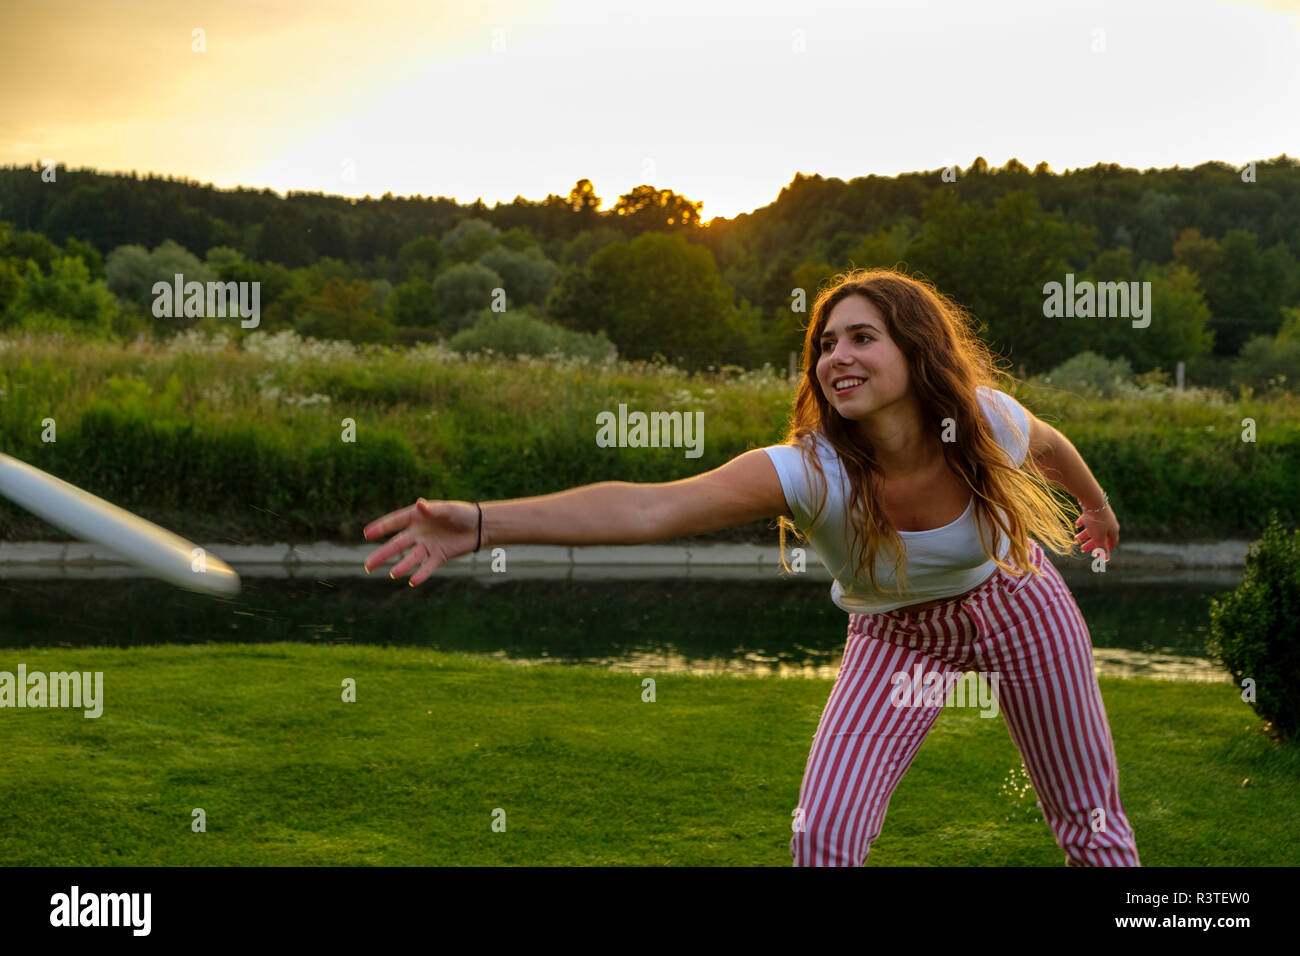 Young woman throwing flying disc Banque D'Images